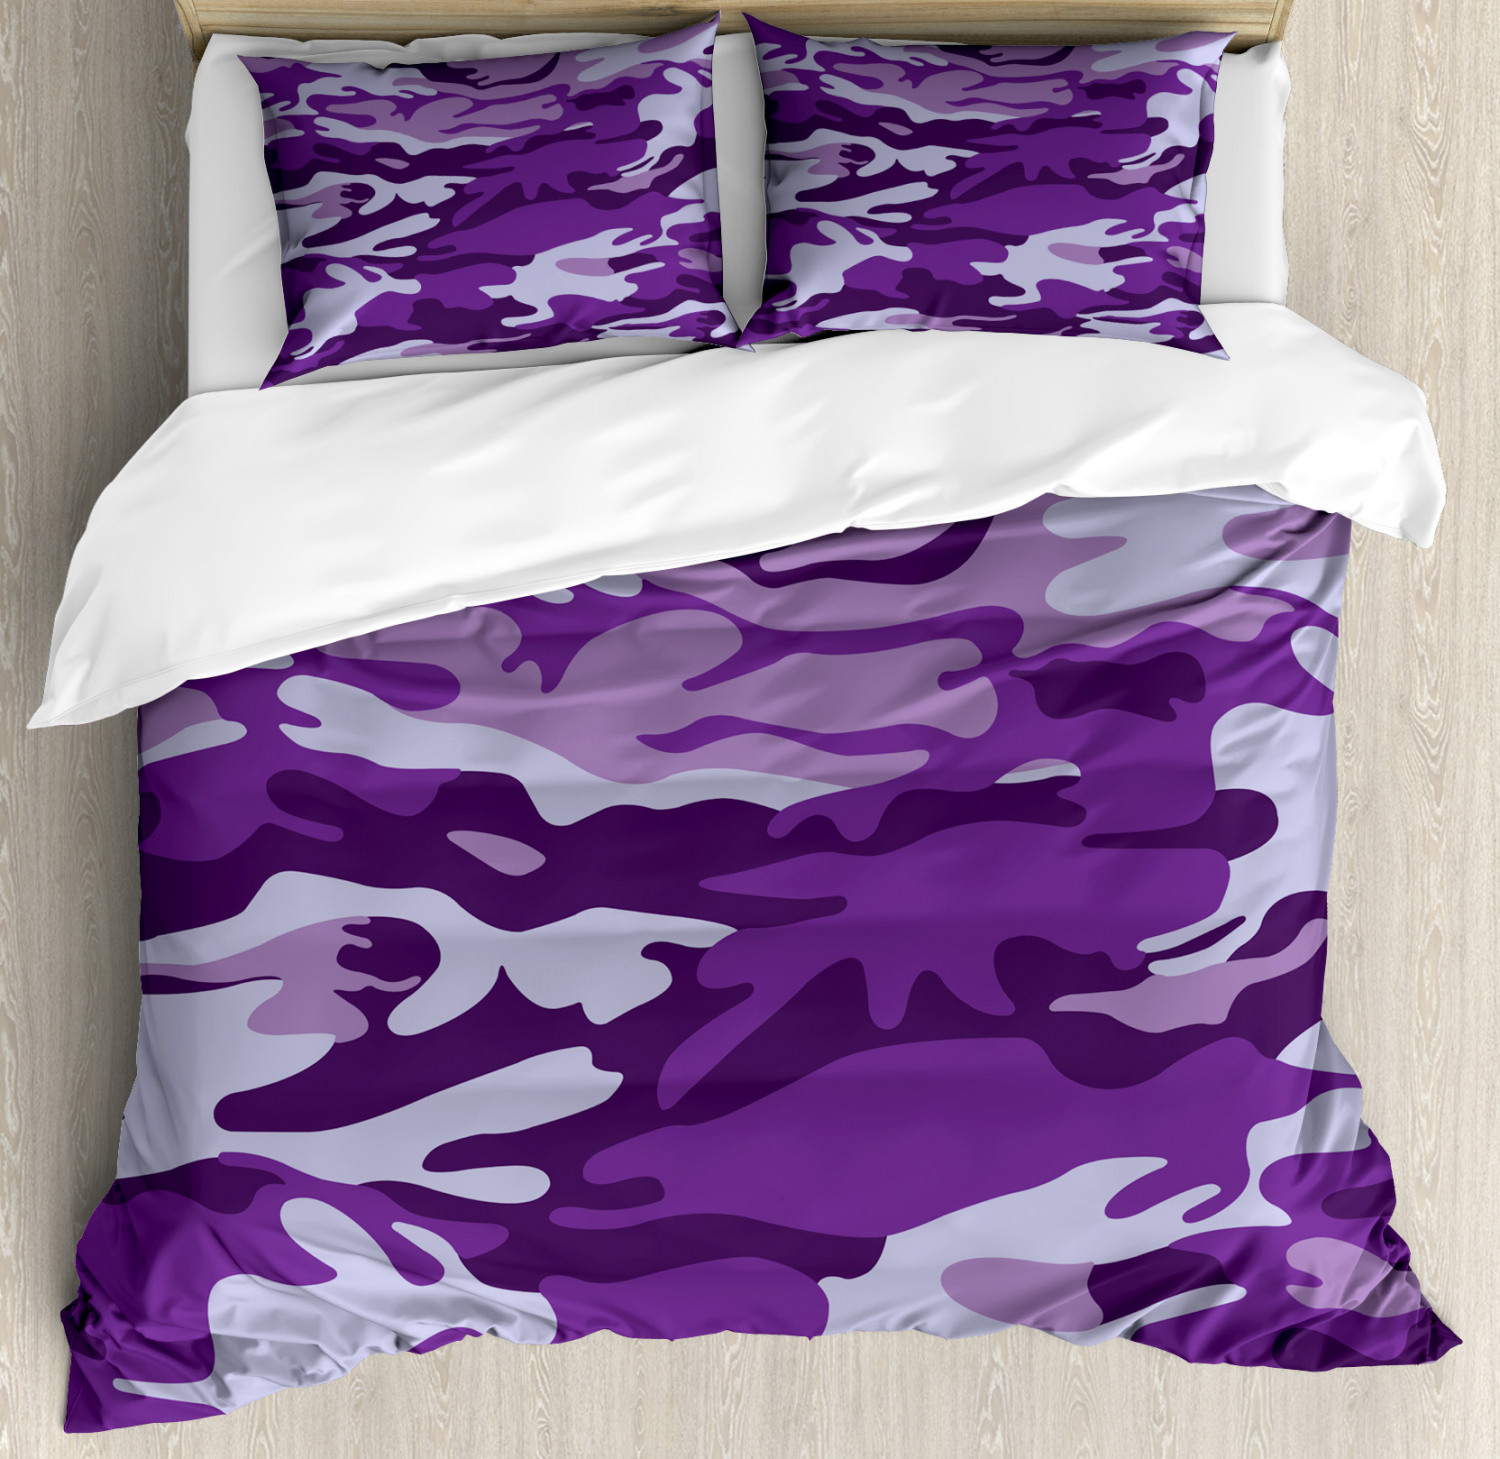 Camouflage Duvet Cover Set with Pillow Shams Purple Toned Waves Print